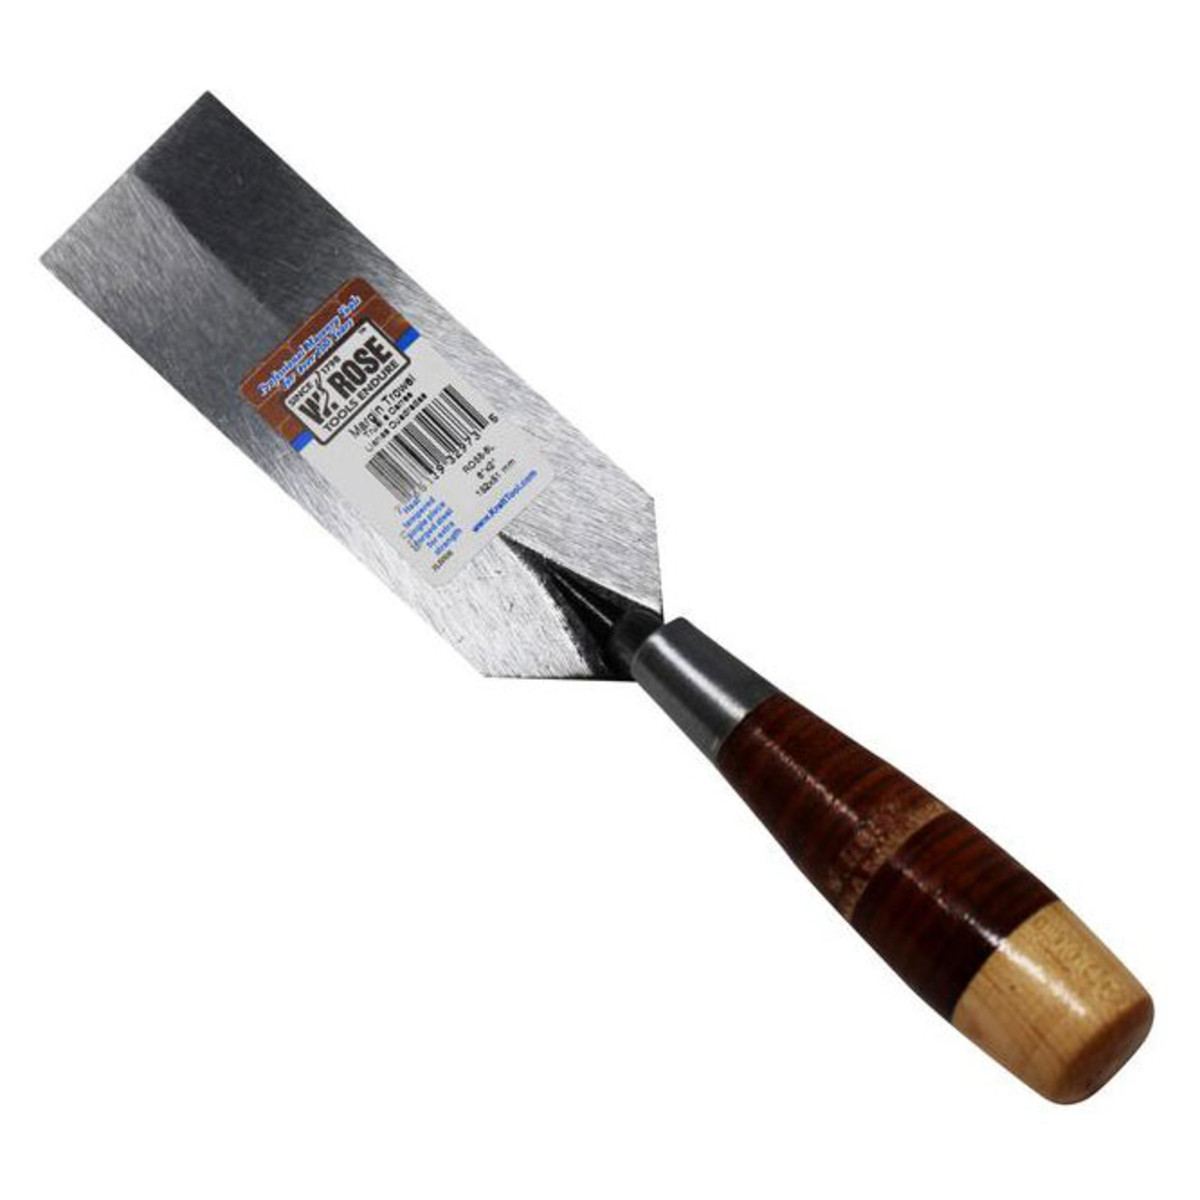 W.Rose RO58-6L Margin Trowel